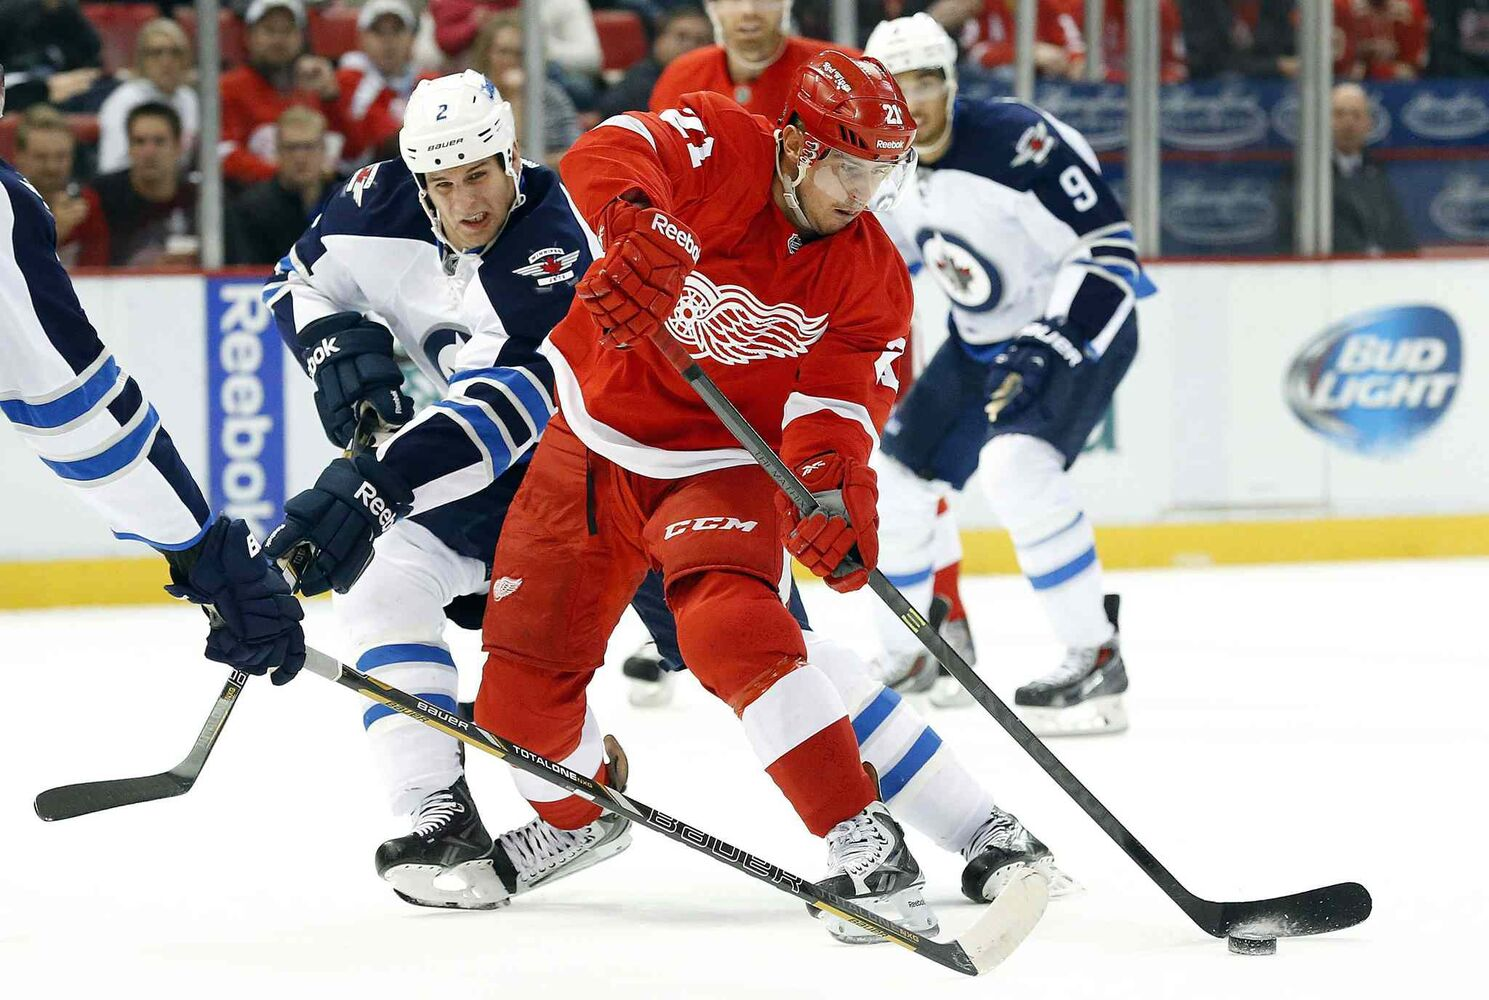 Winnipeg Jets defenceman Adam Pardy (2) defends against Detroit Red Wings forward Tomas Tatar during the second period. (PAUL SANCYA / THE ASSOCIATED PRESS)